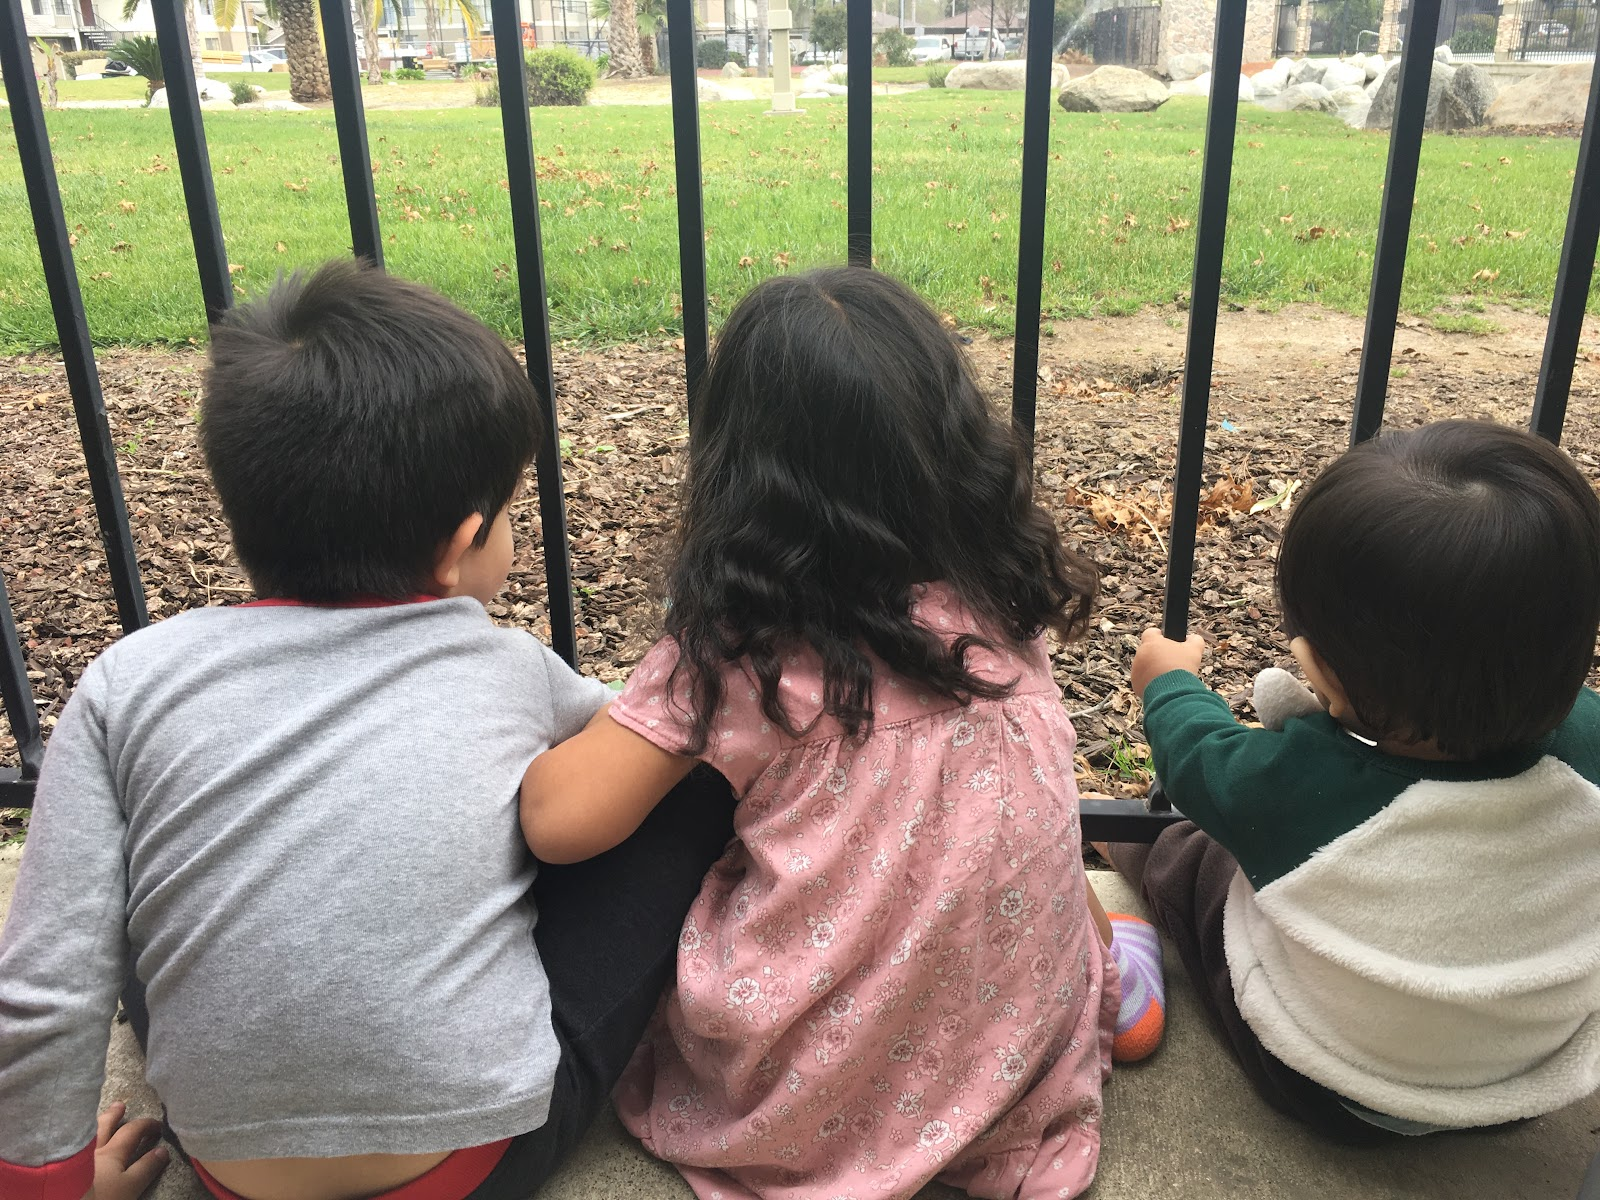 A creative activity you can do with kids is to have a play date. 3 kids sitting outside looking out